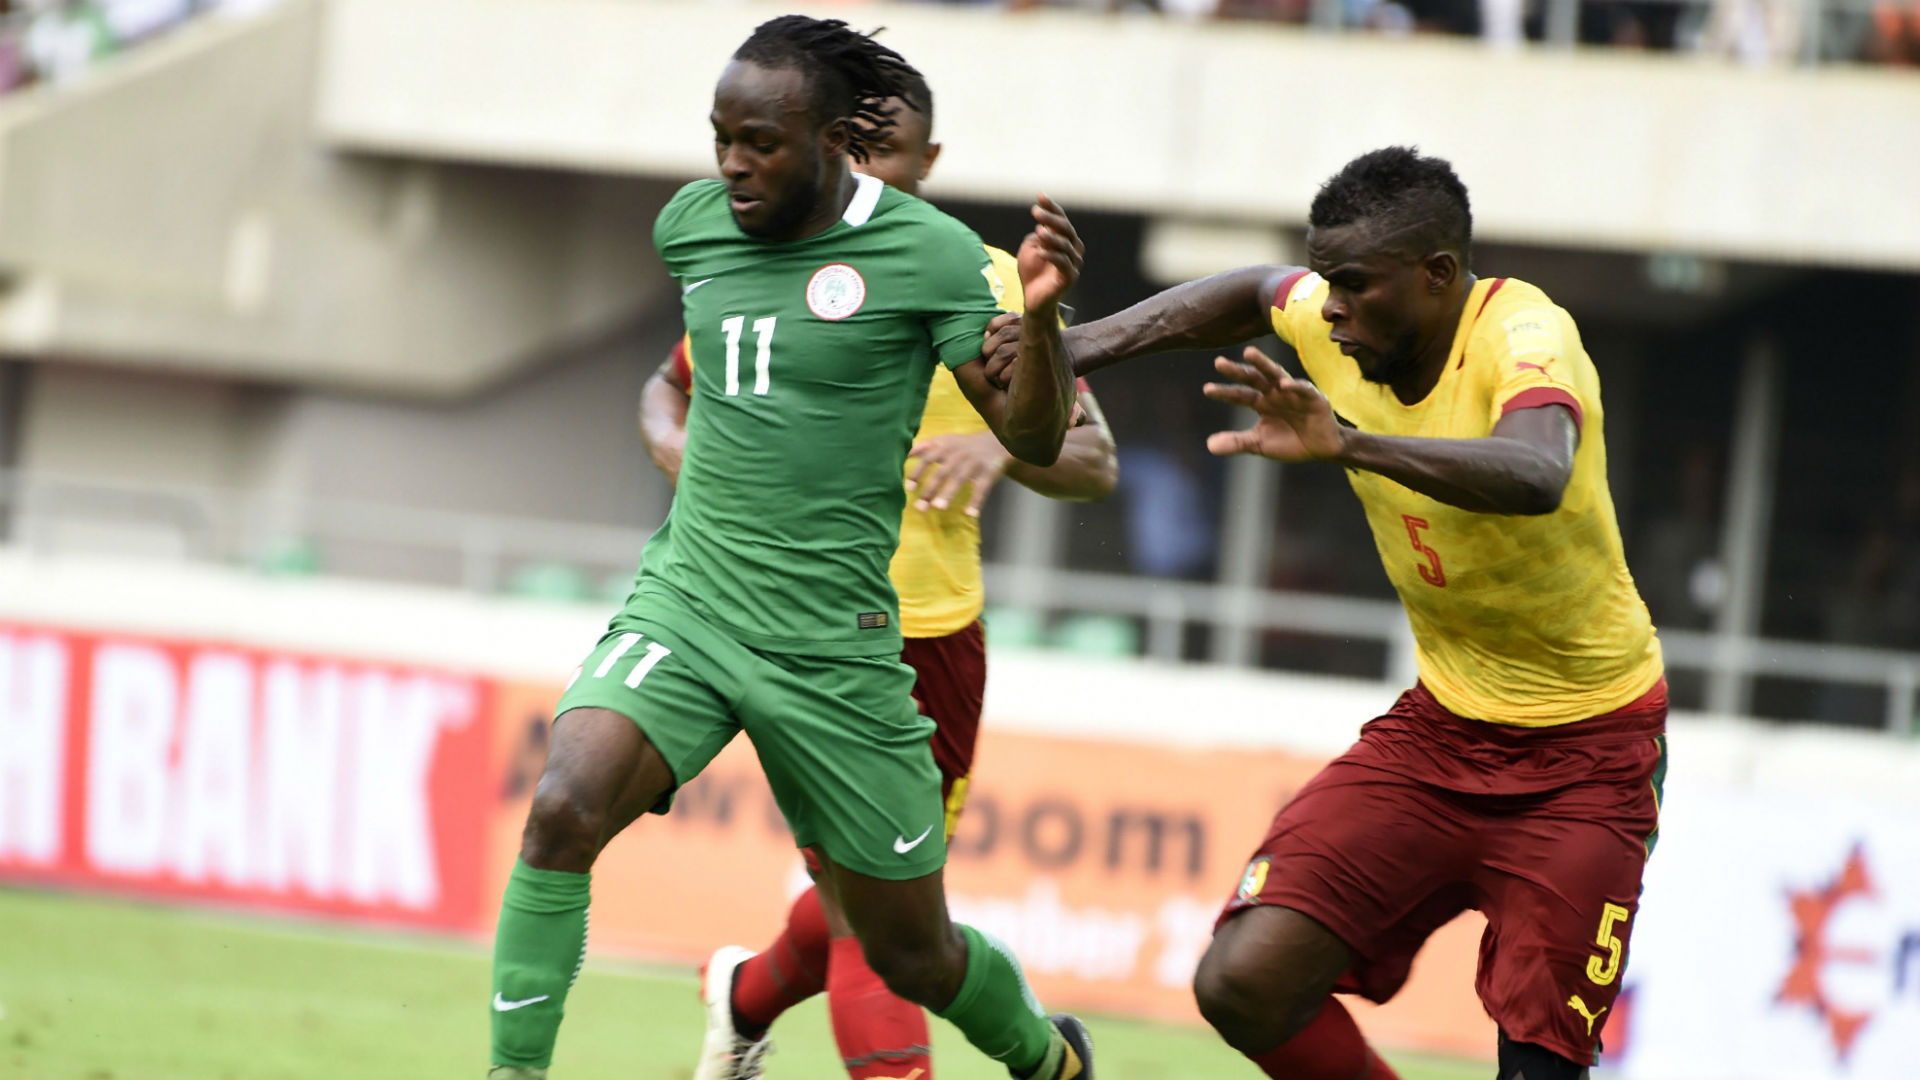 Cameroon will do everything possible to defeat Nigeria, says Sebastien Siani